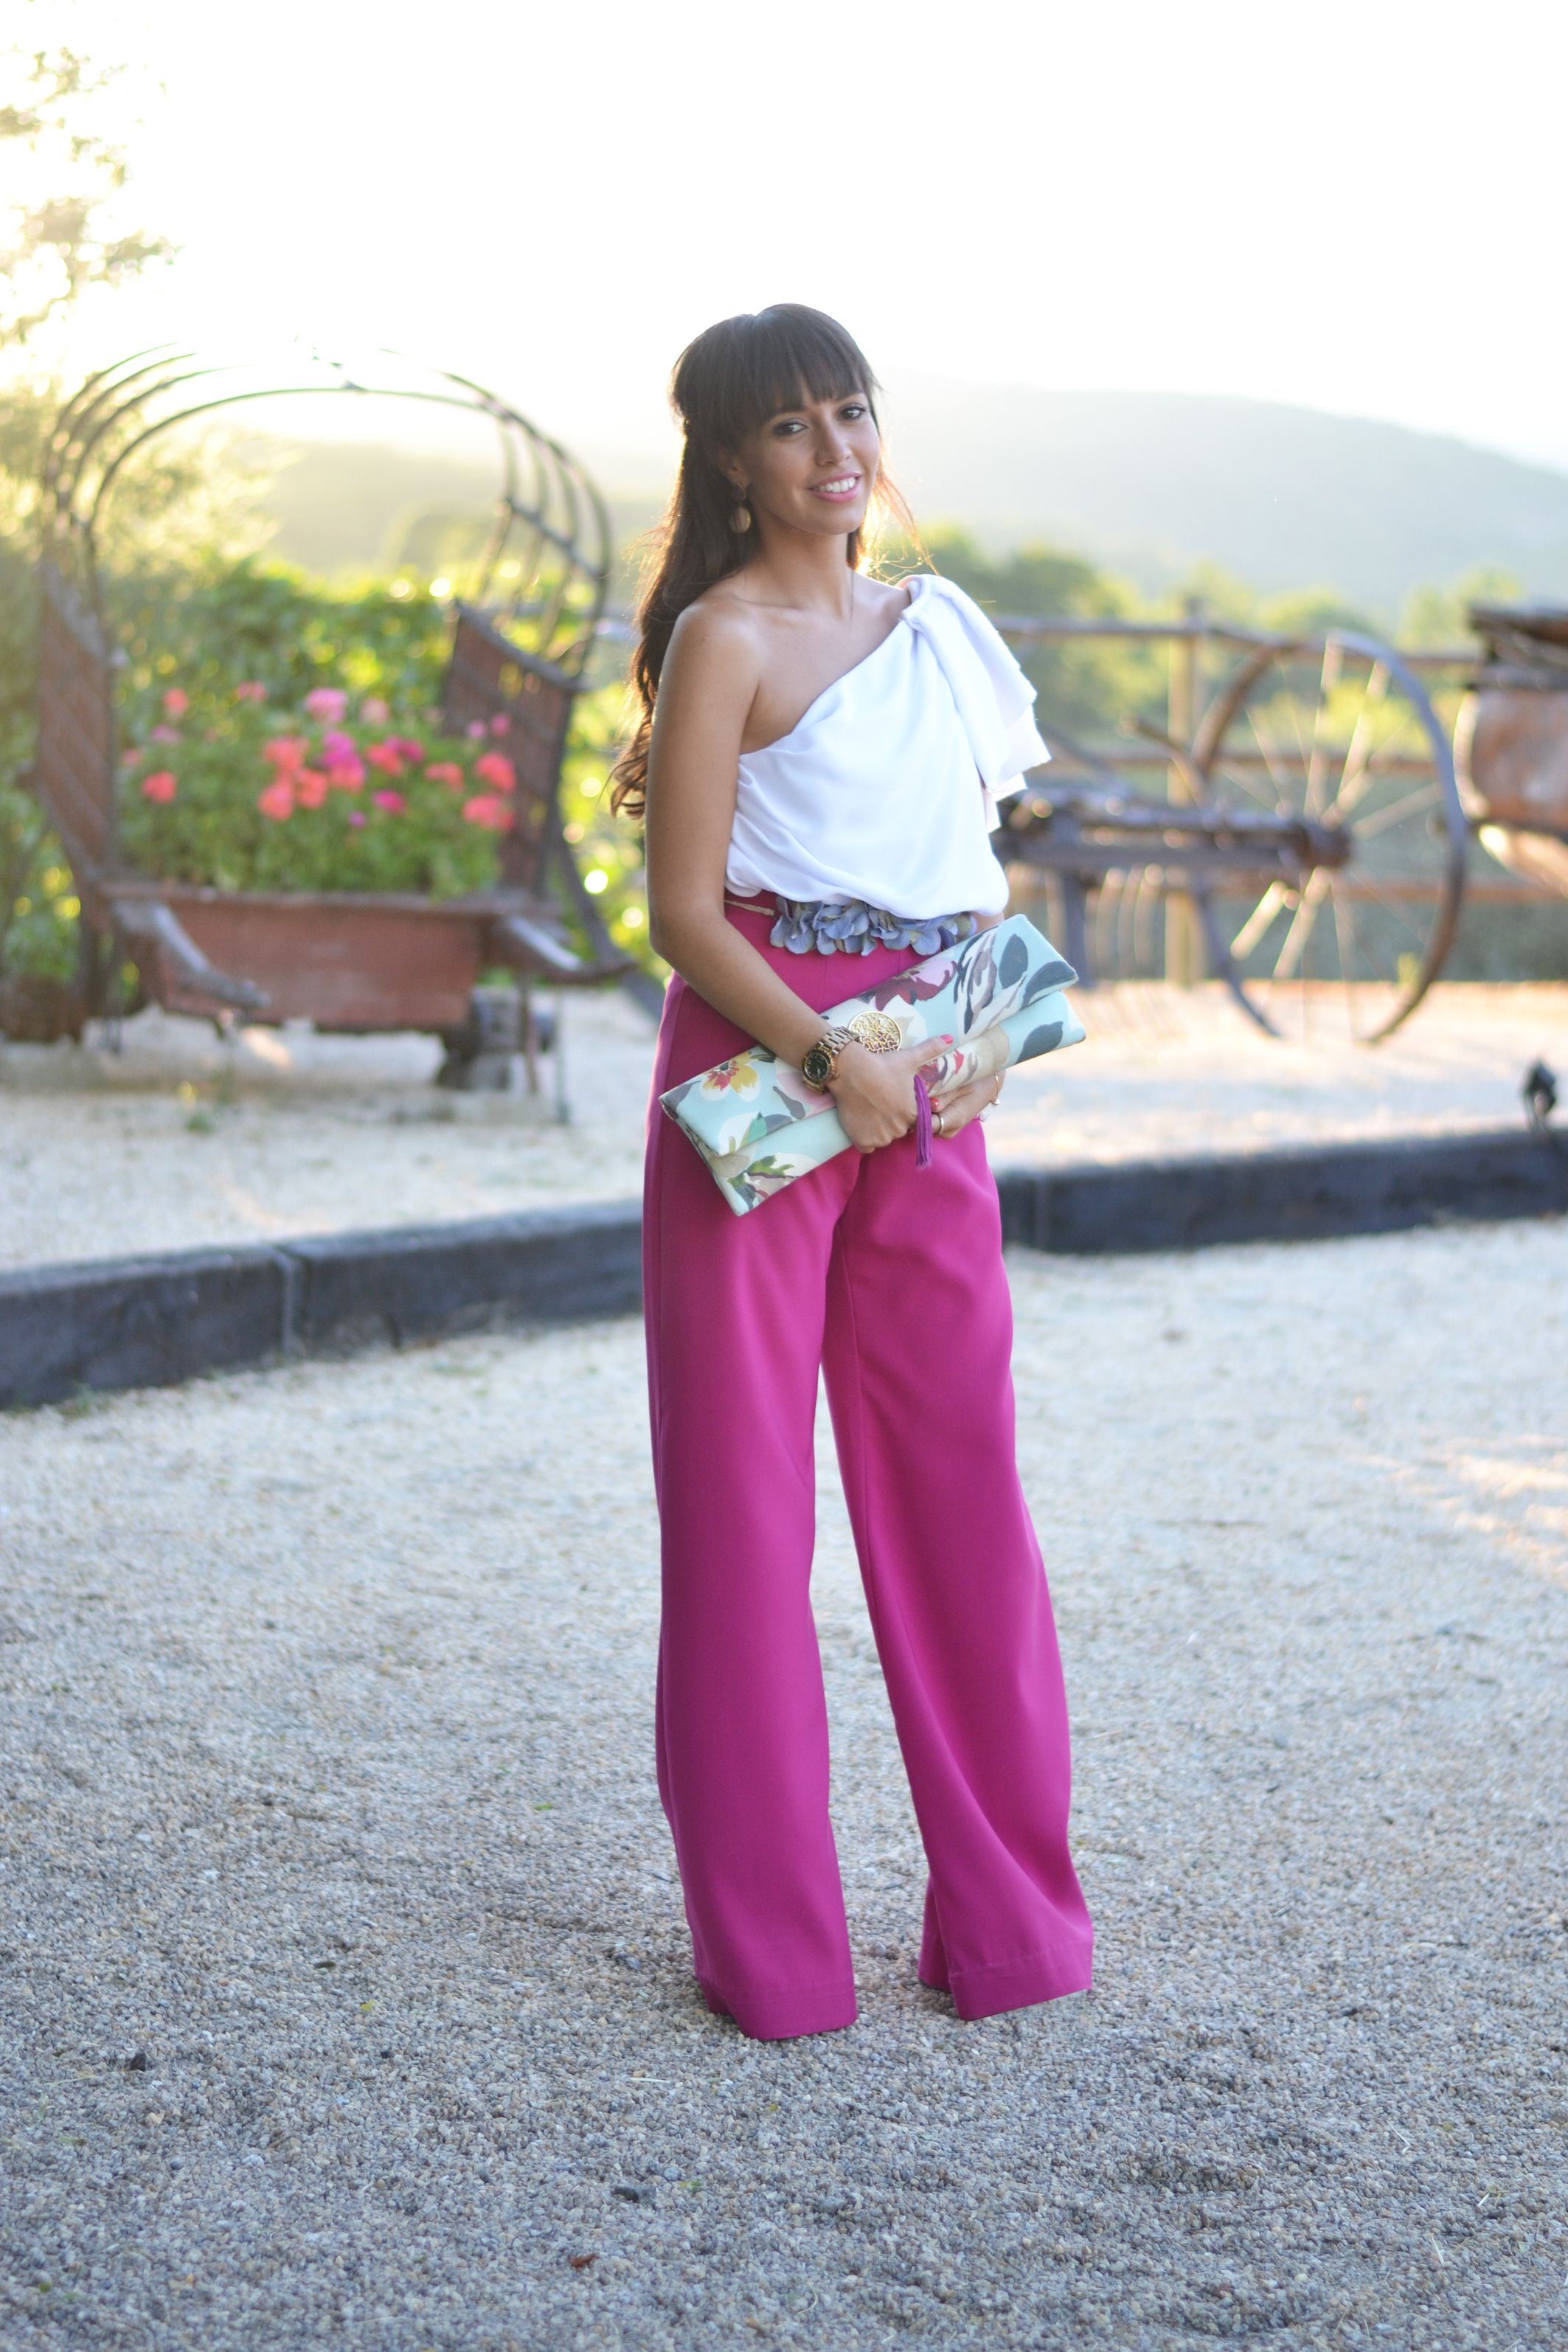 summer wedding, wedding outfit, ceremony street style